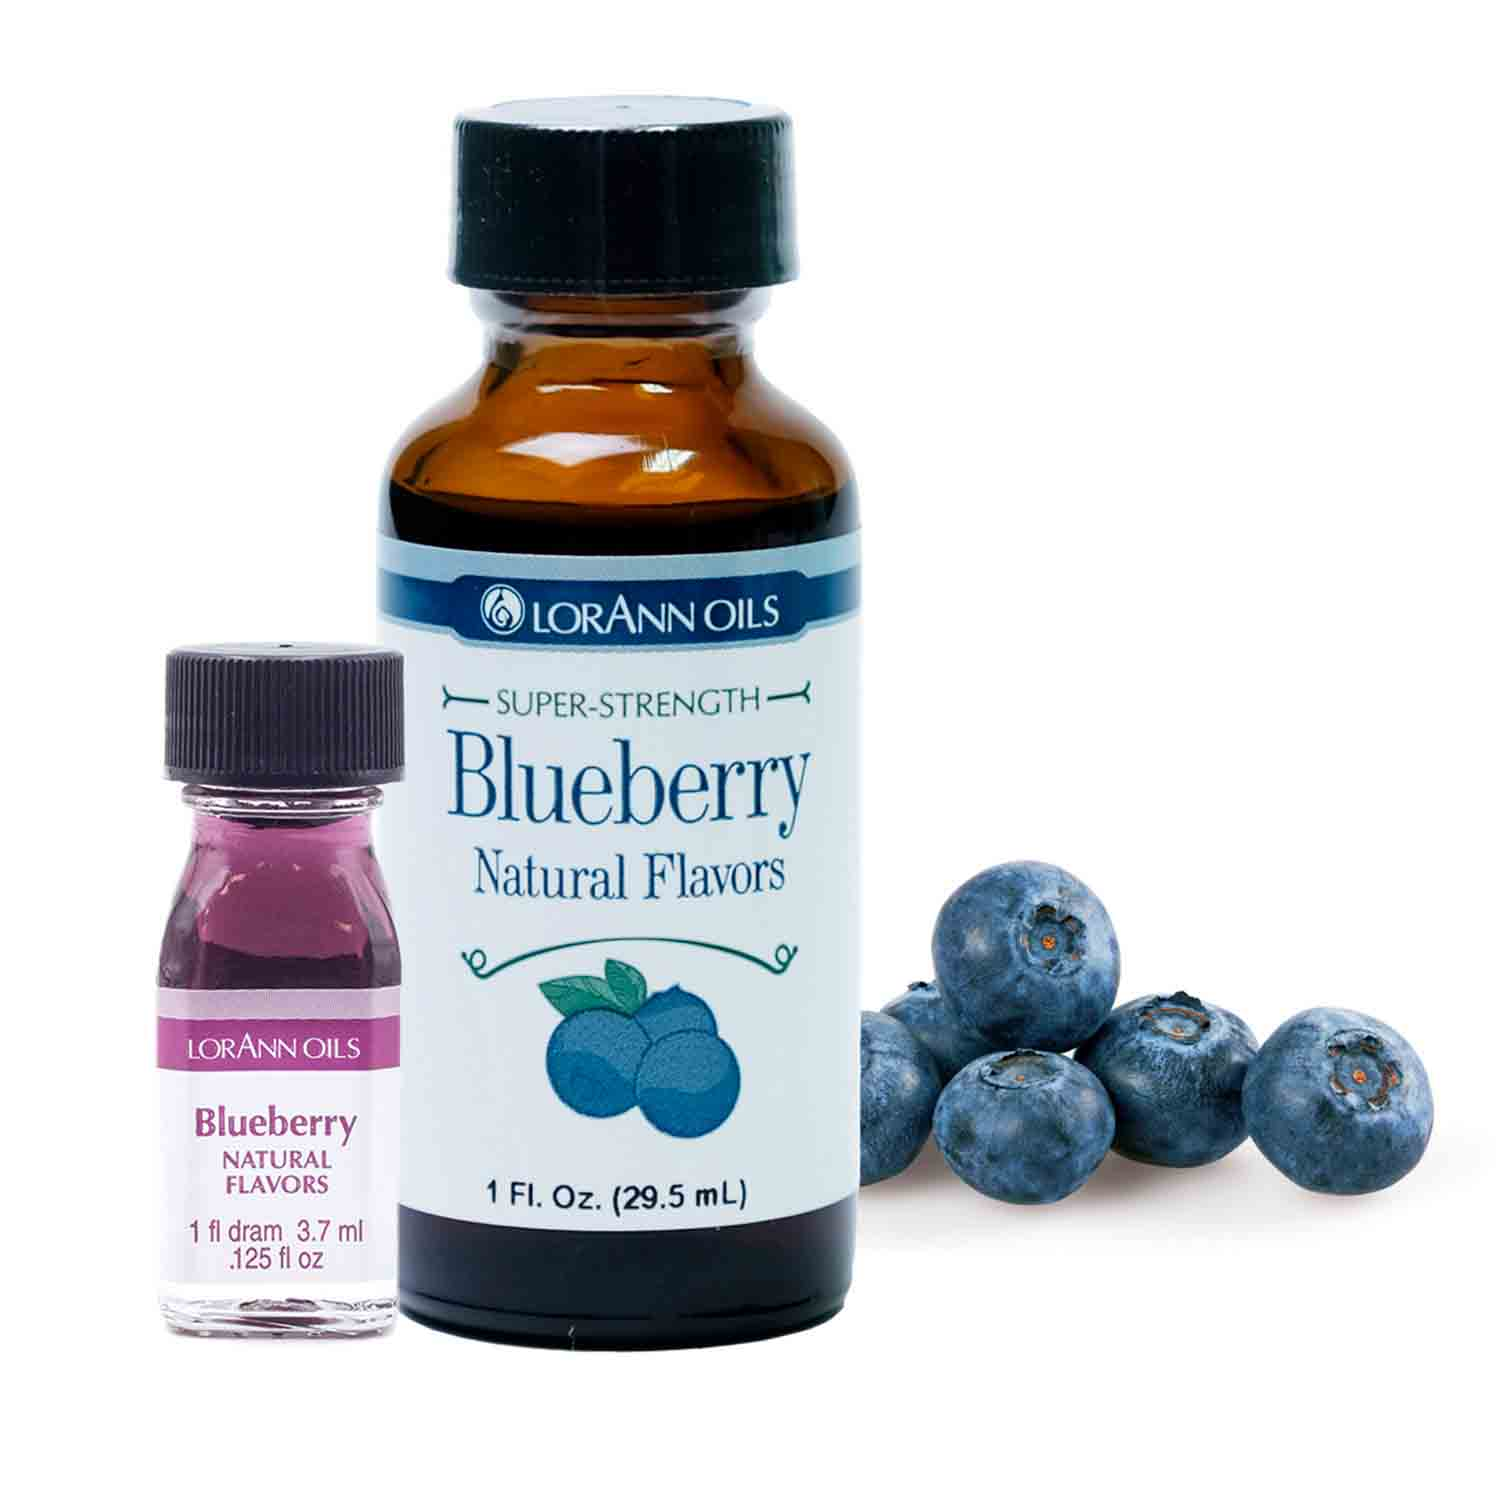 Blueberry LorAnn Super-Strength Flavor